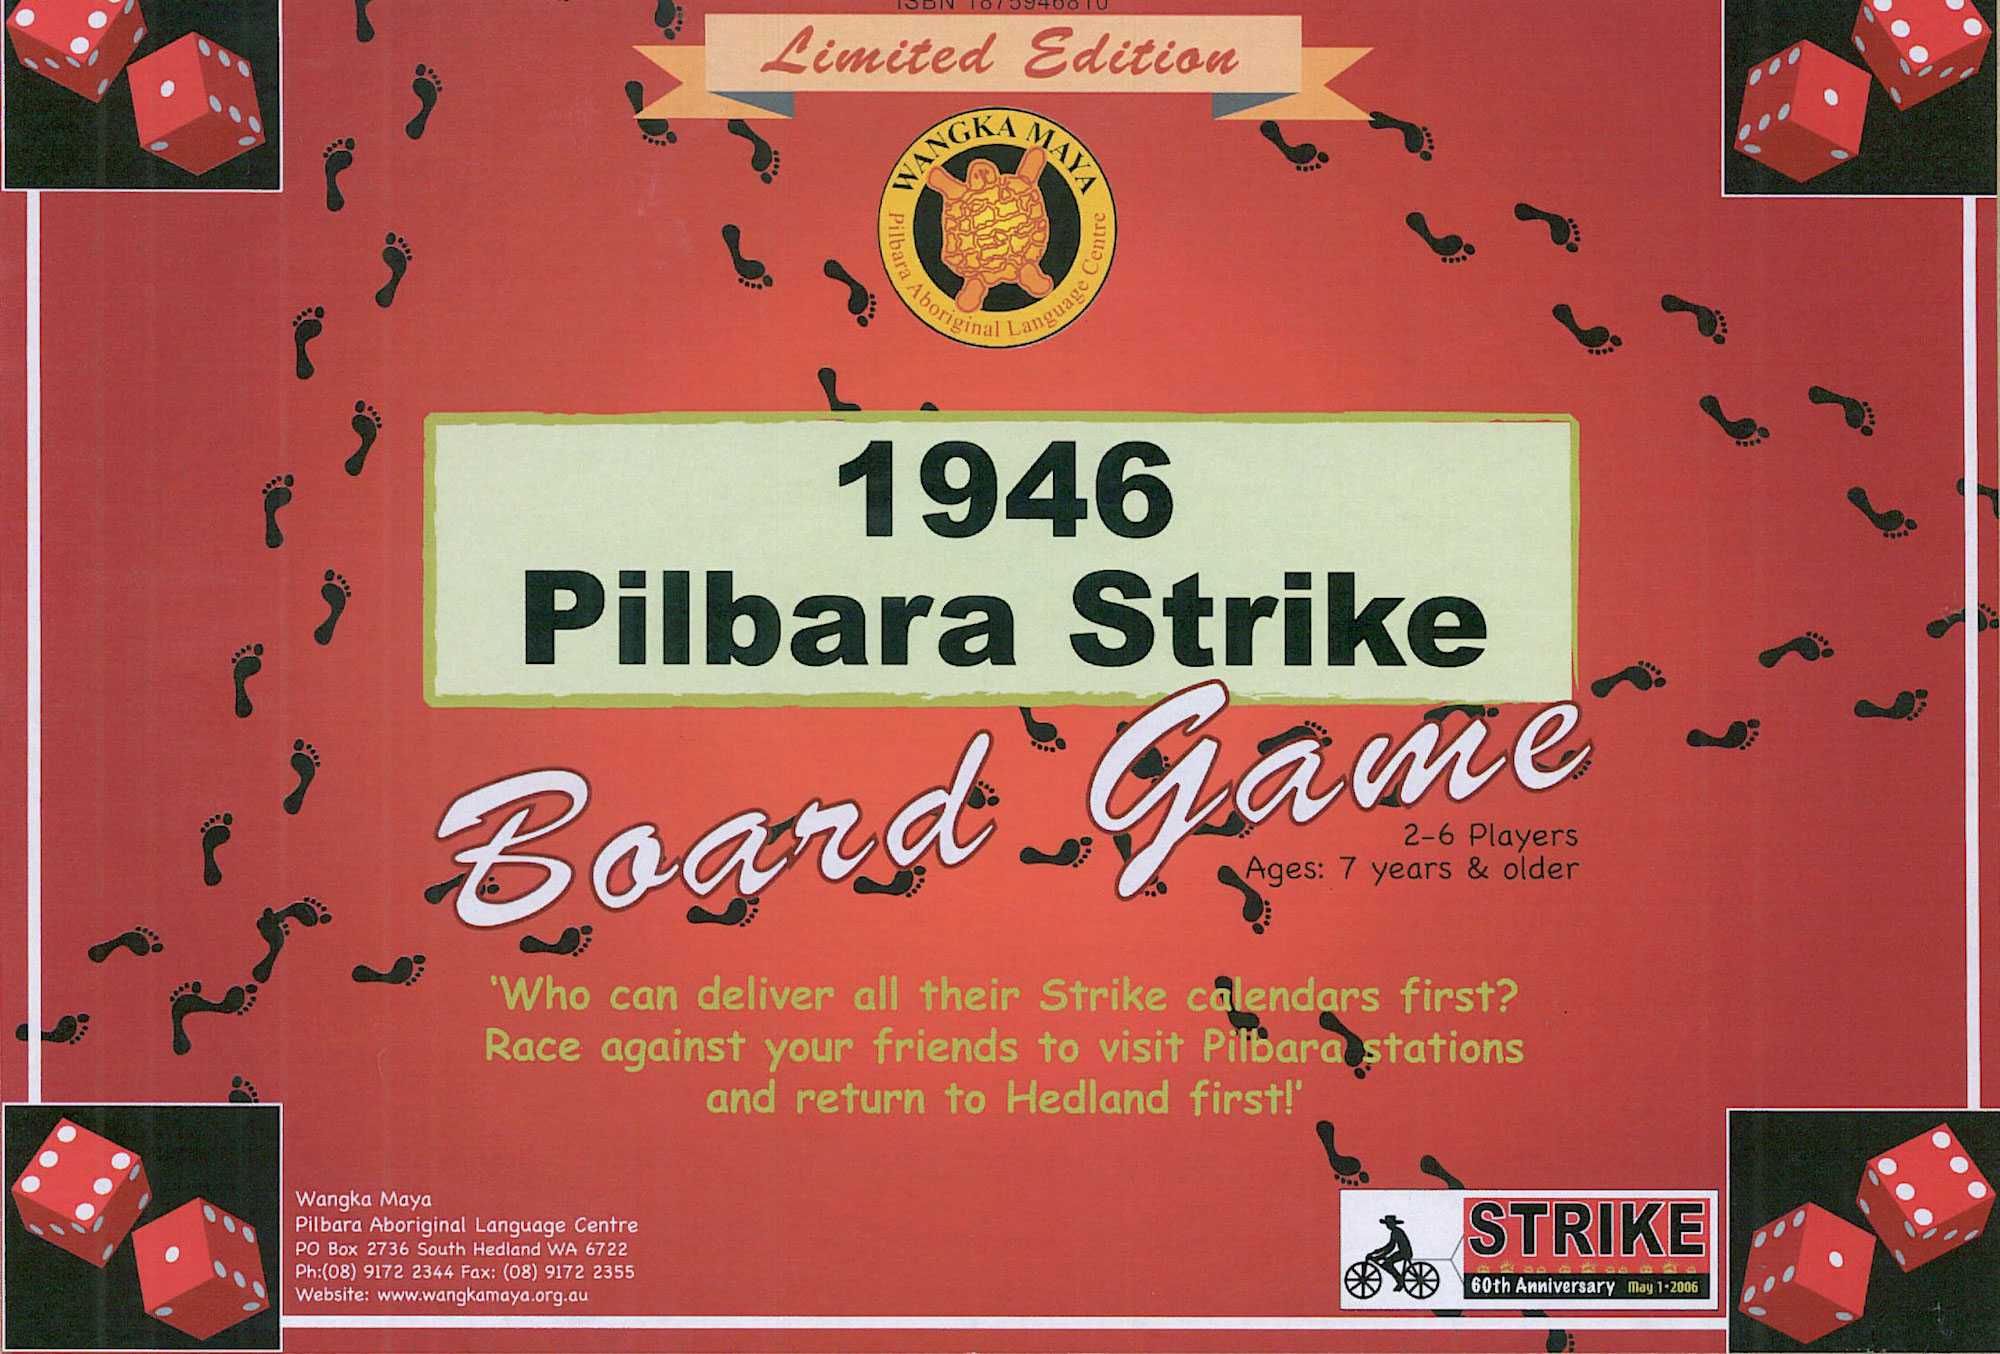 The 1946 Pilbara Strike Board Game Cover